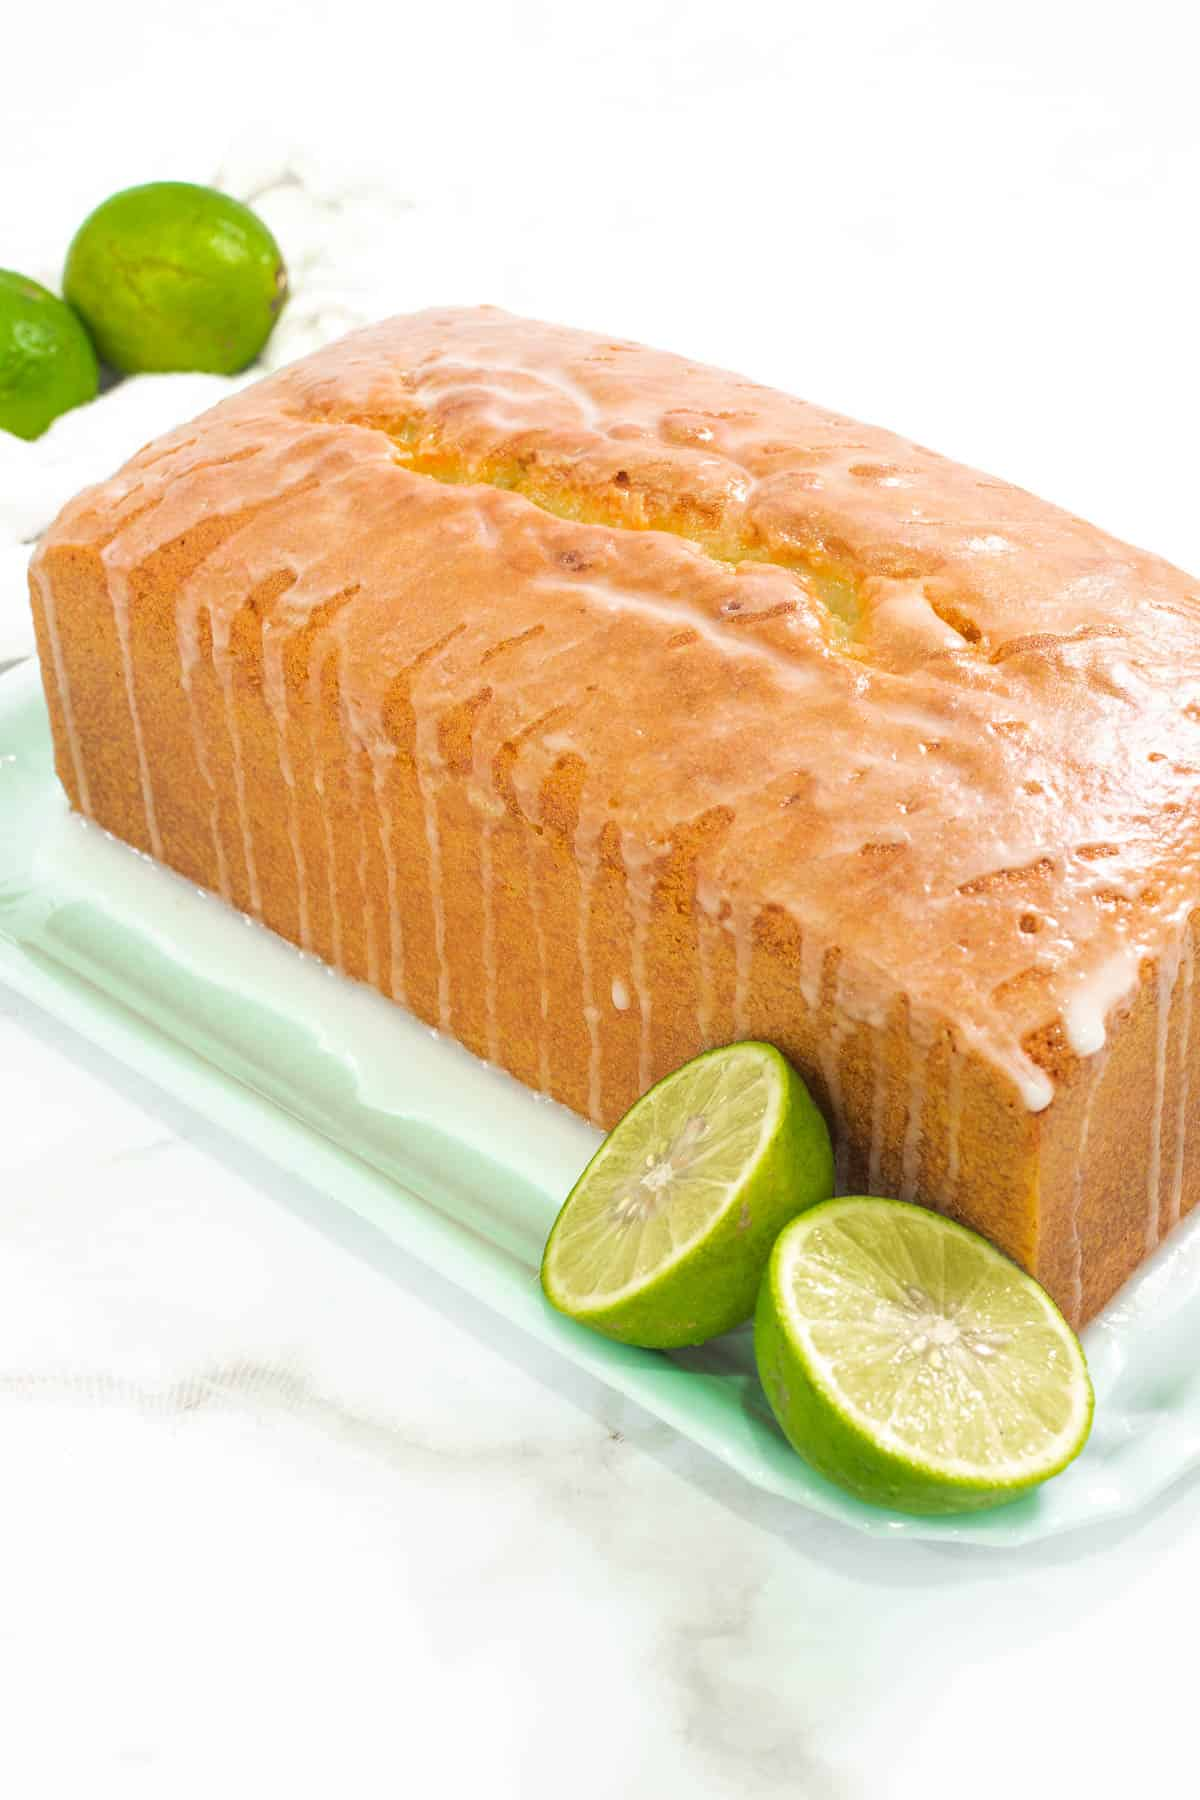 Lime pound cake loaf on a green tray with limes on the side